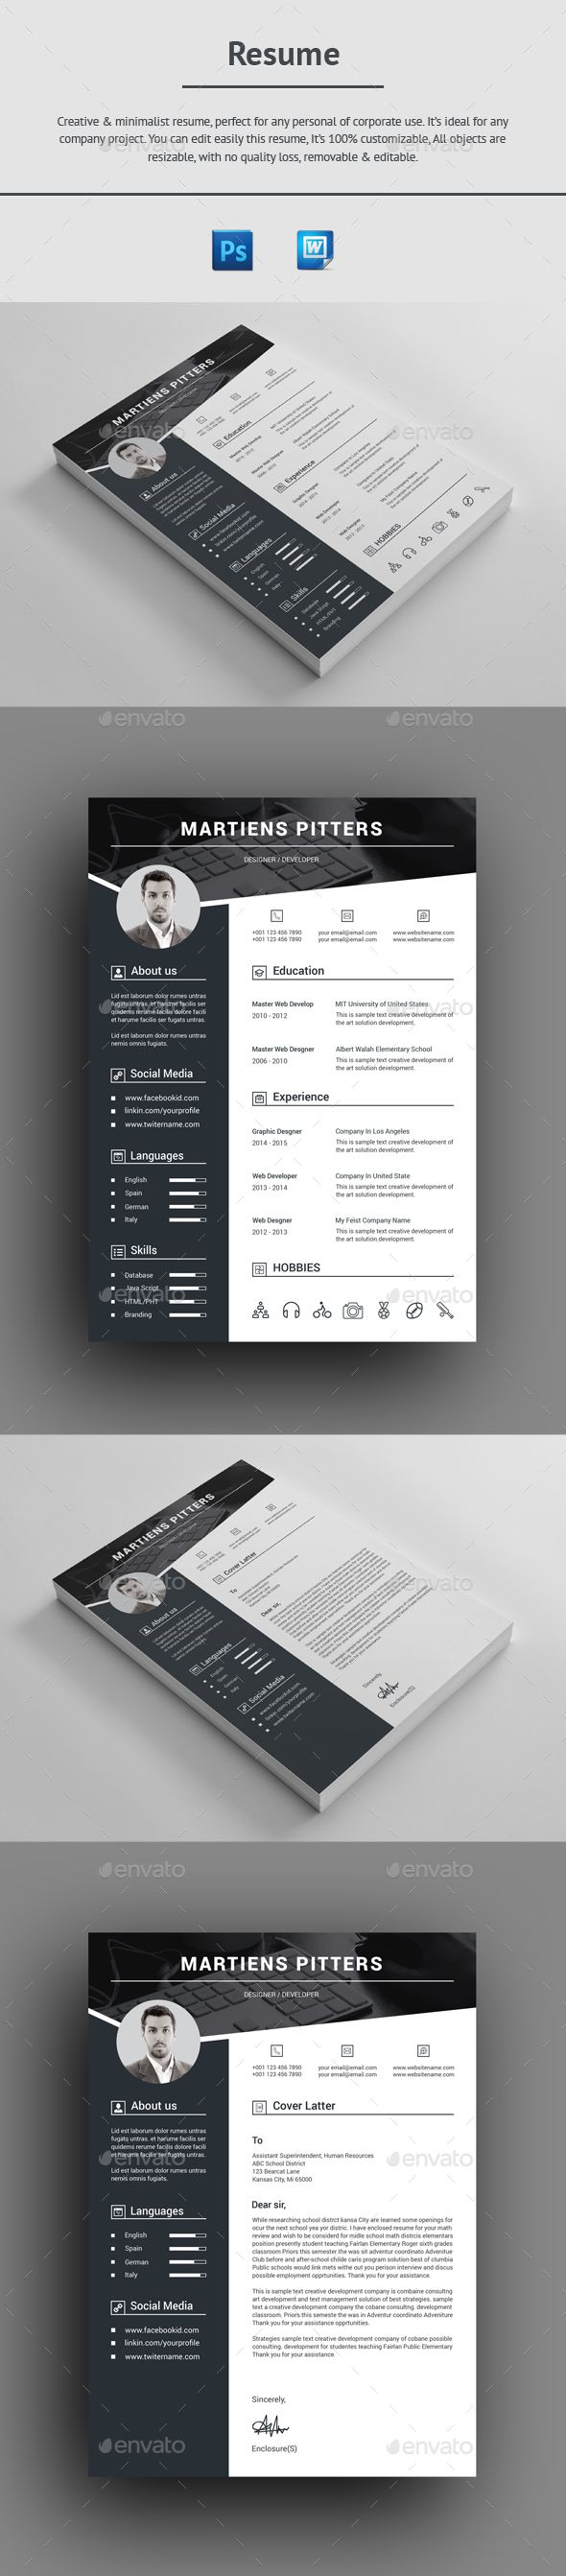 Resume Template PSD, MS Word | Resume Templates | Pinterest